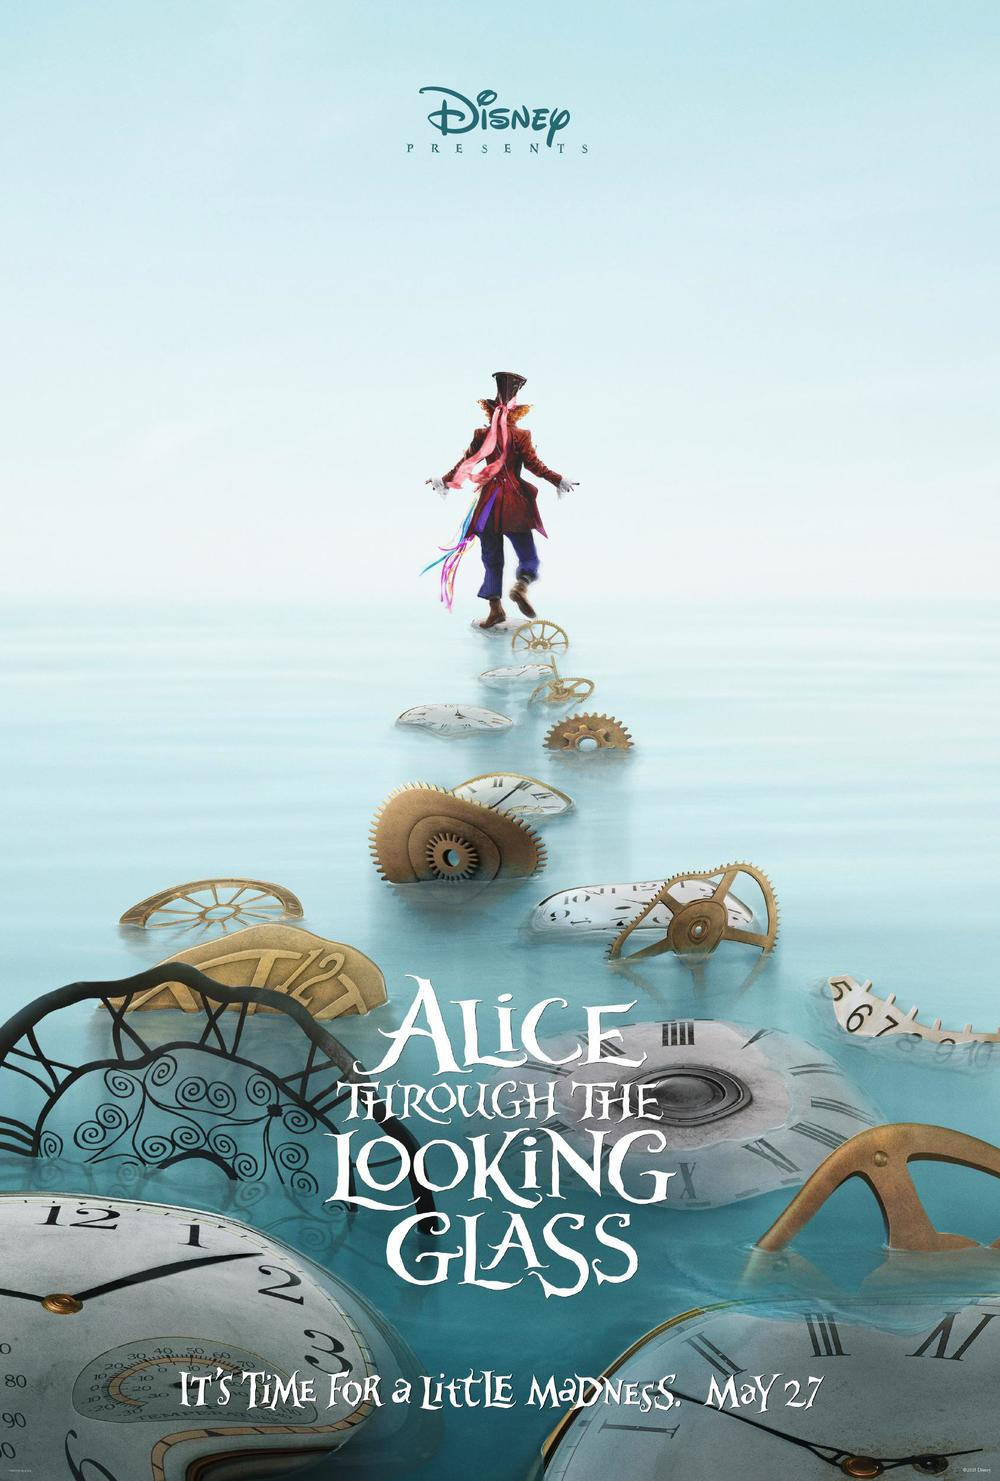 alice-through-the-looking-glass-posters-and-plot-details1